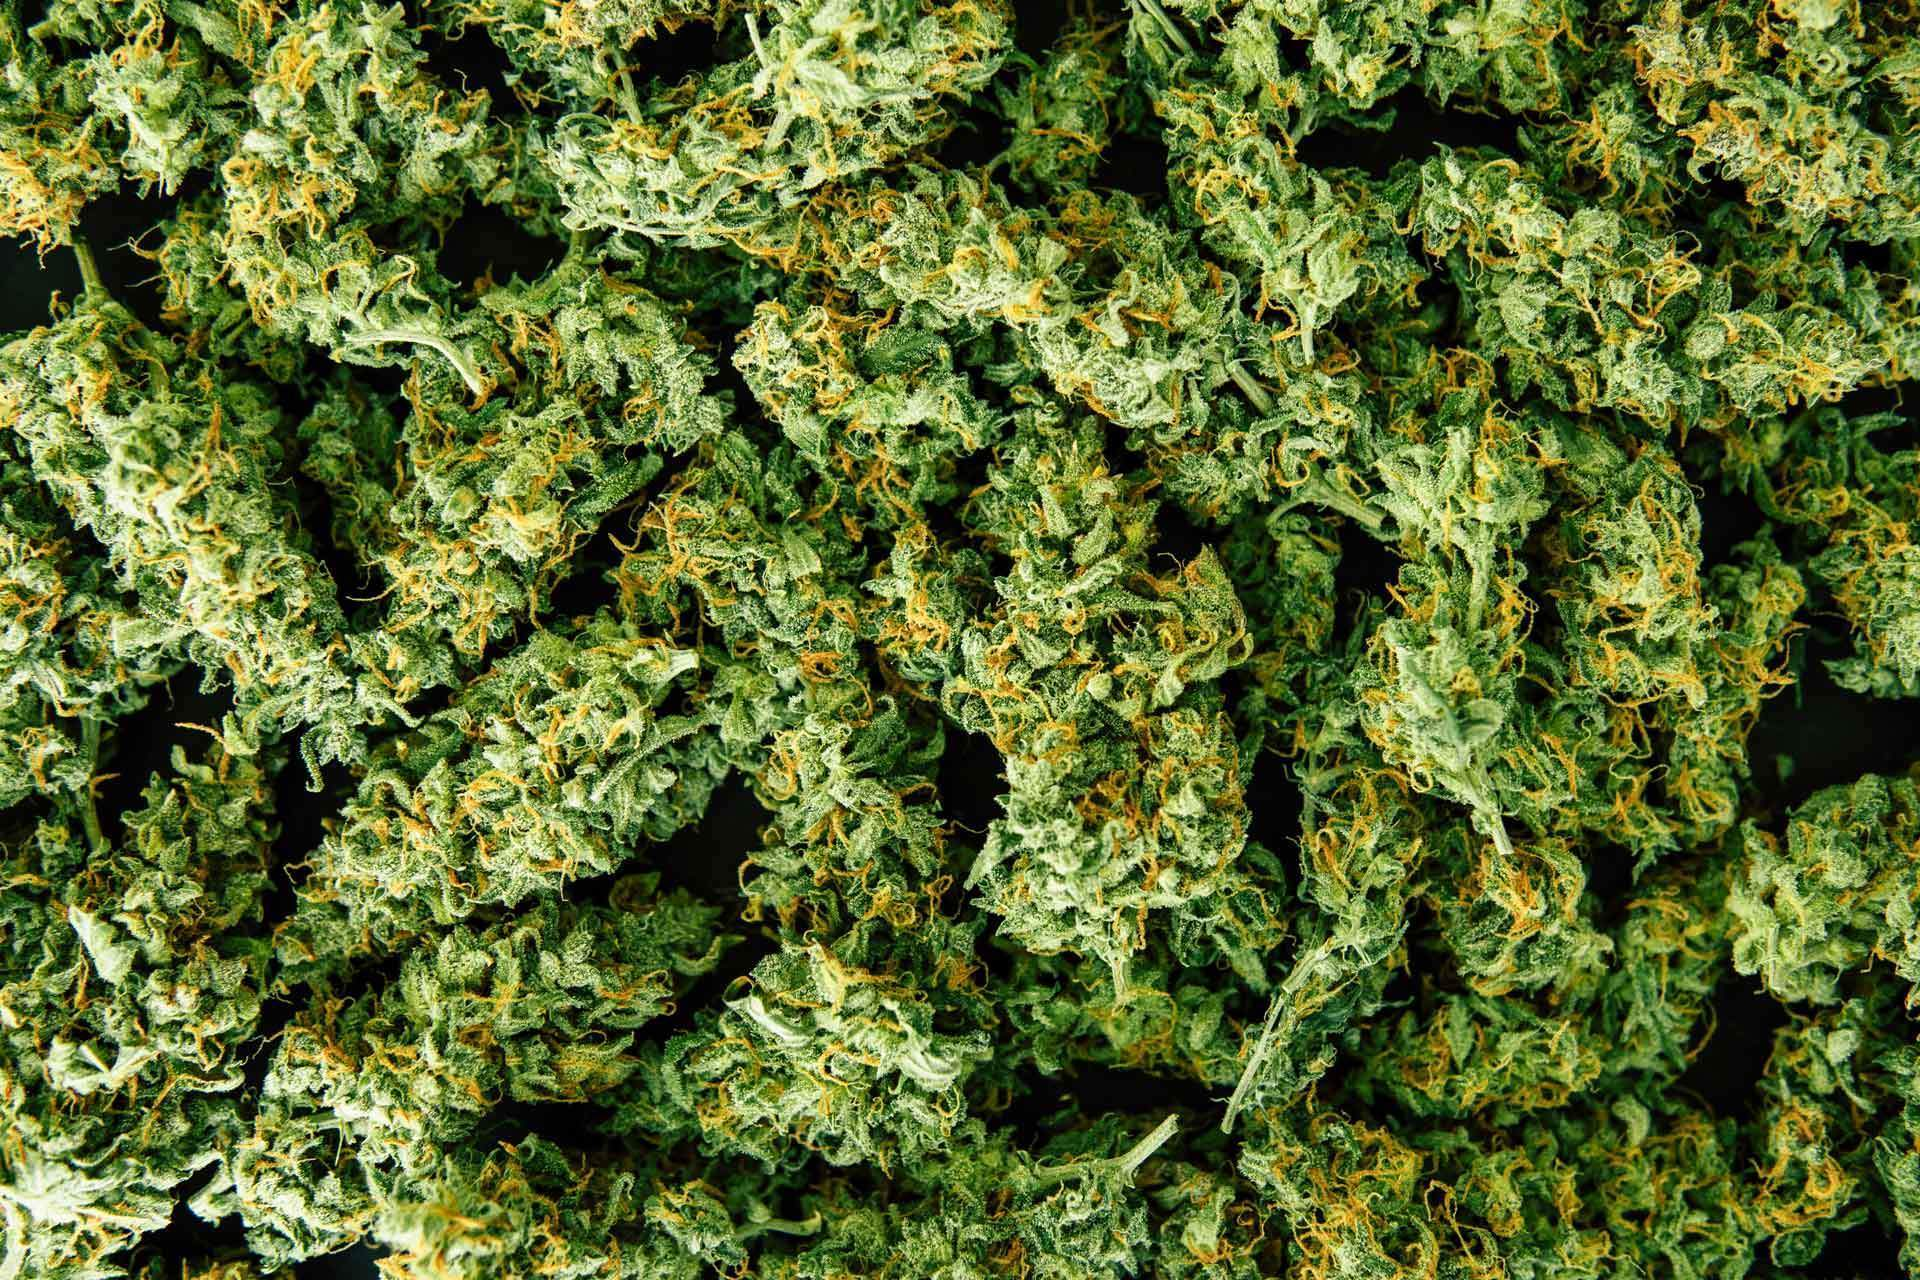 Cannabis branding: Marketing an industry from the ground up